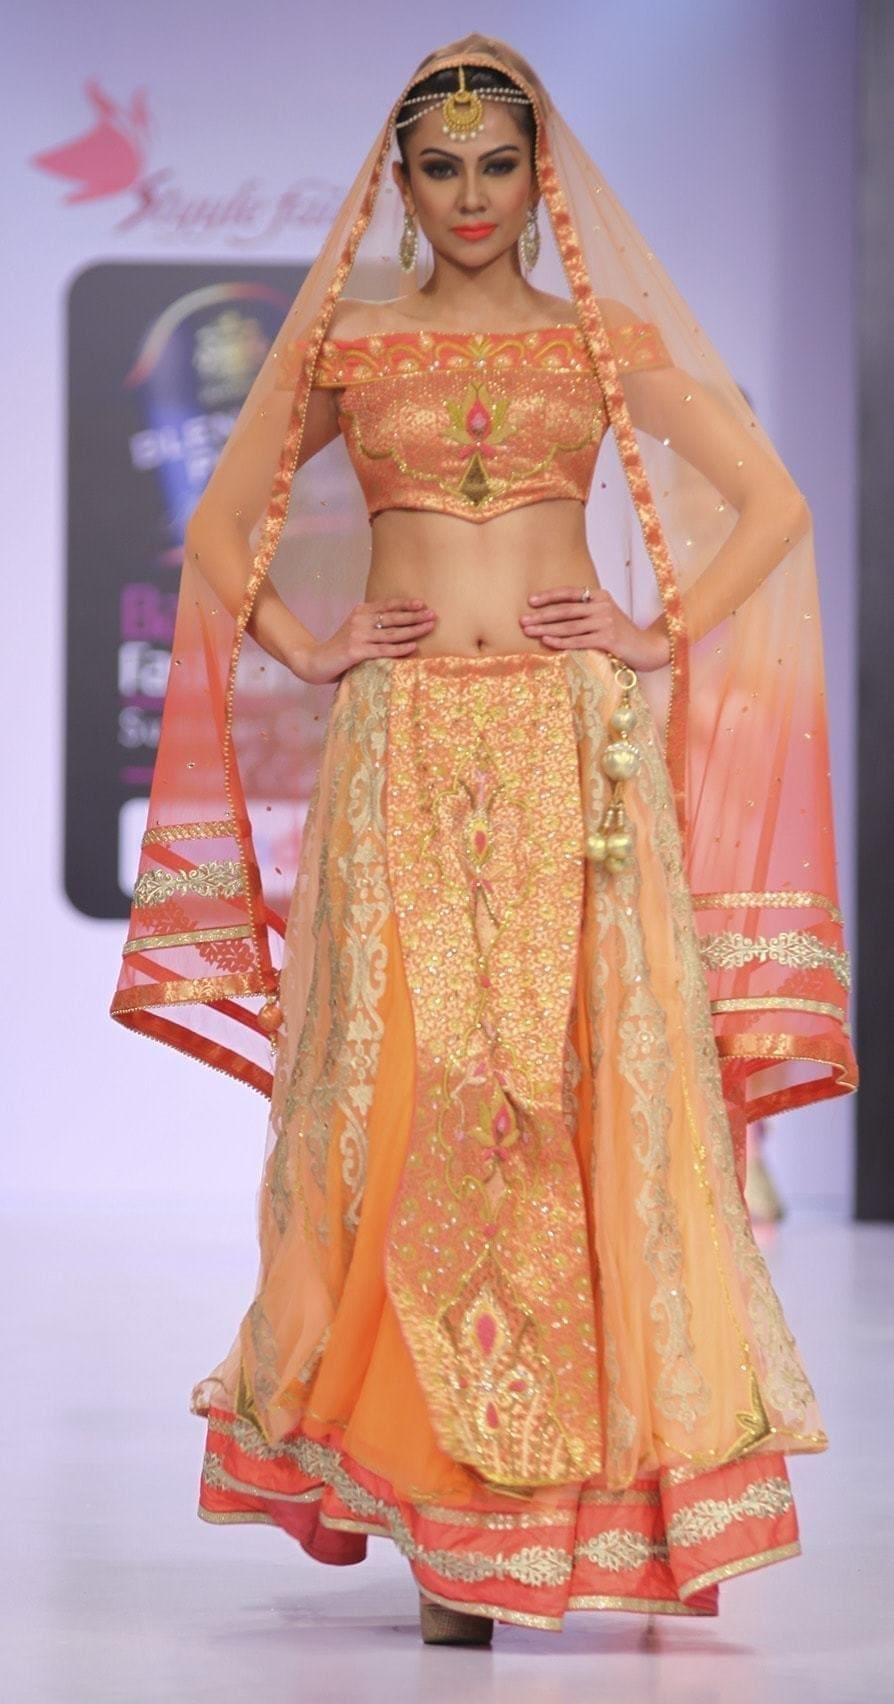 Ombre effect peach and coral heavy bridal lehenga